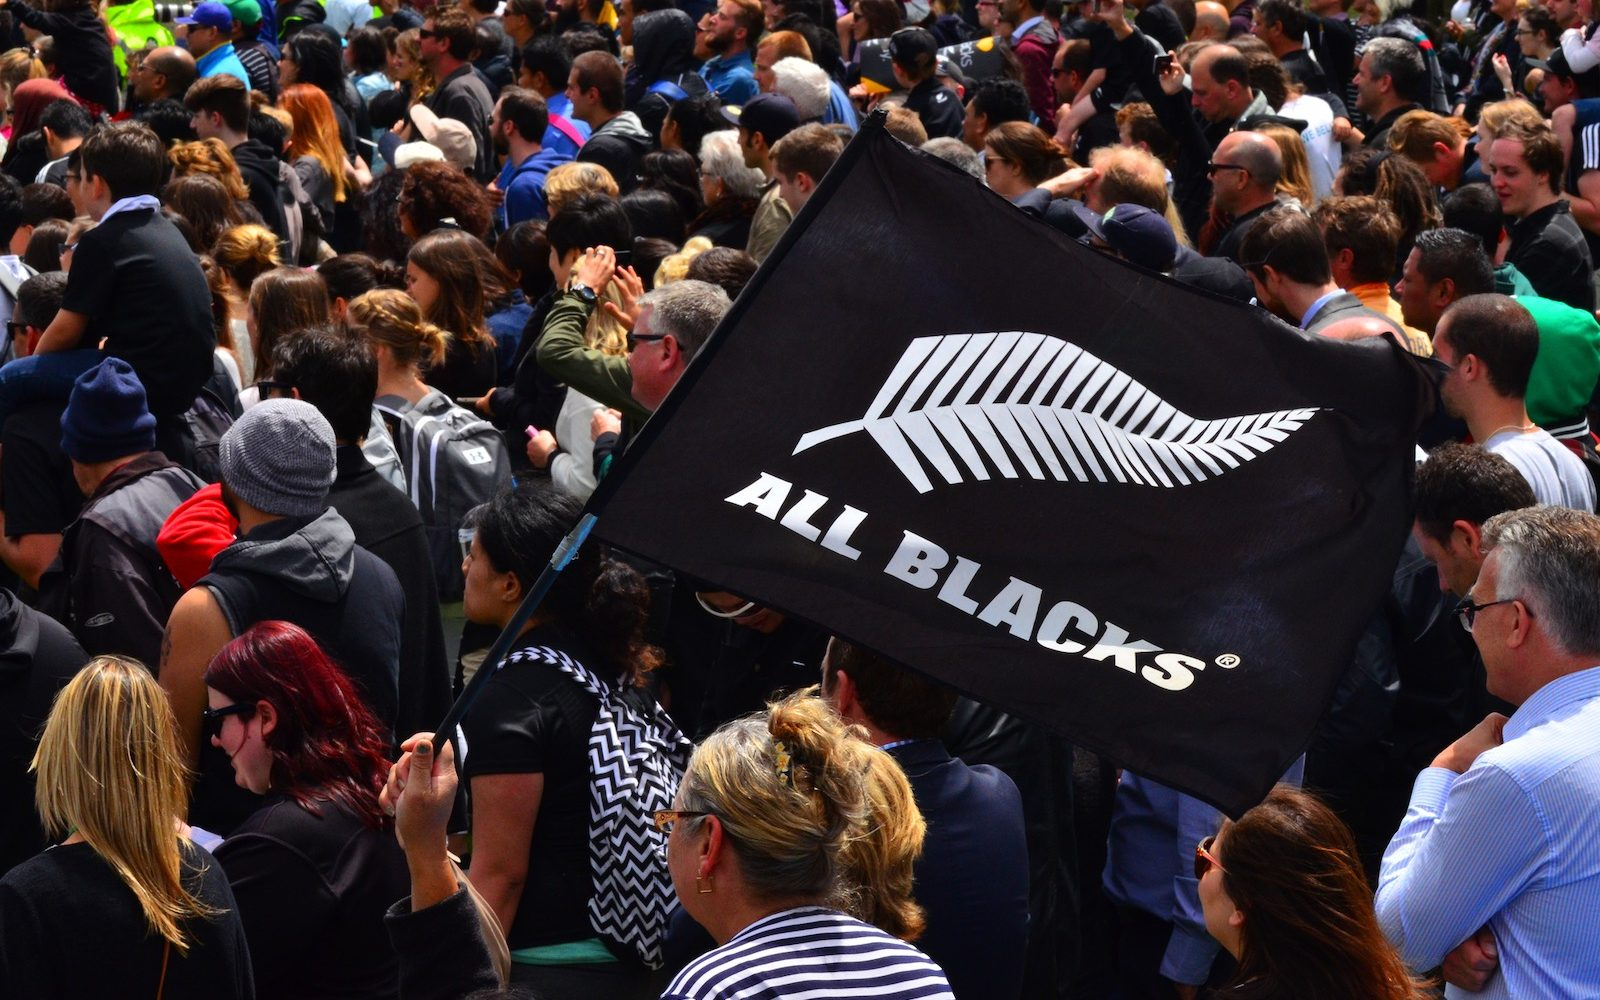 All Blacks fans in Victoria Park Auckland, New Zealand